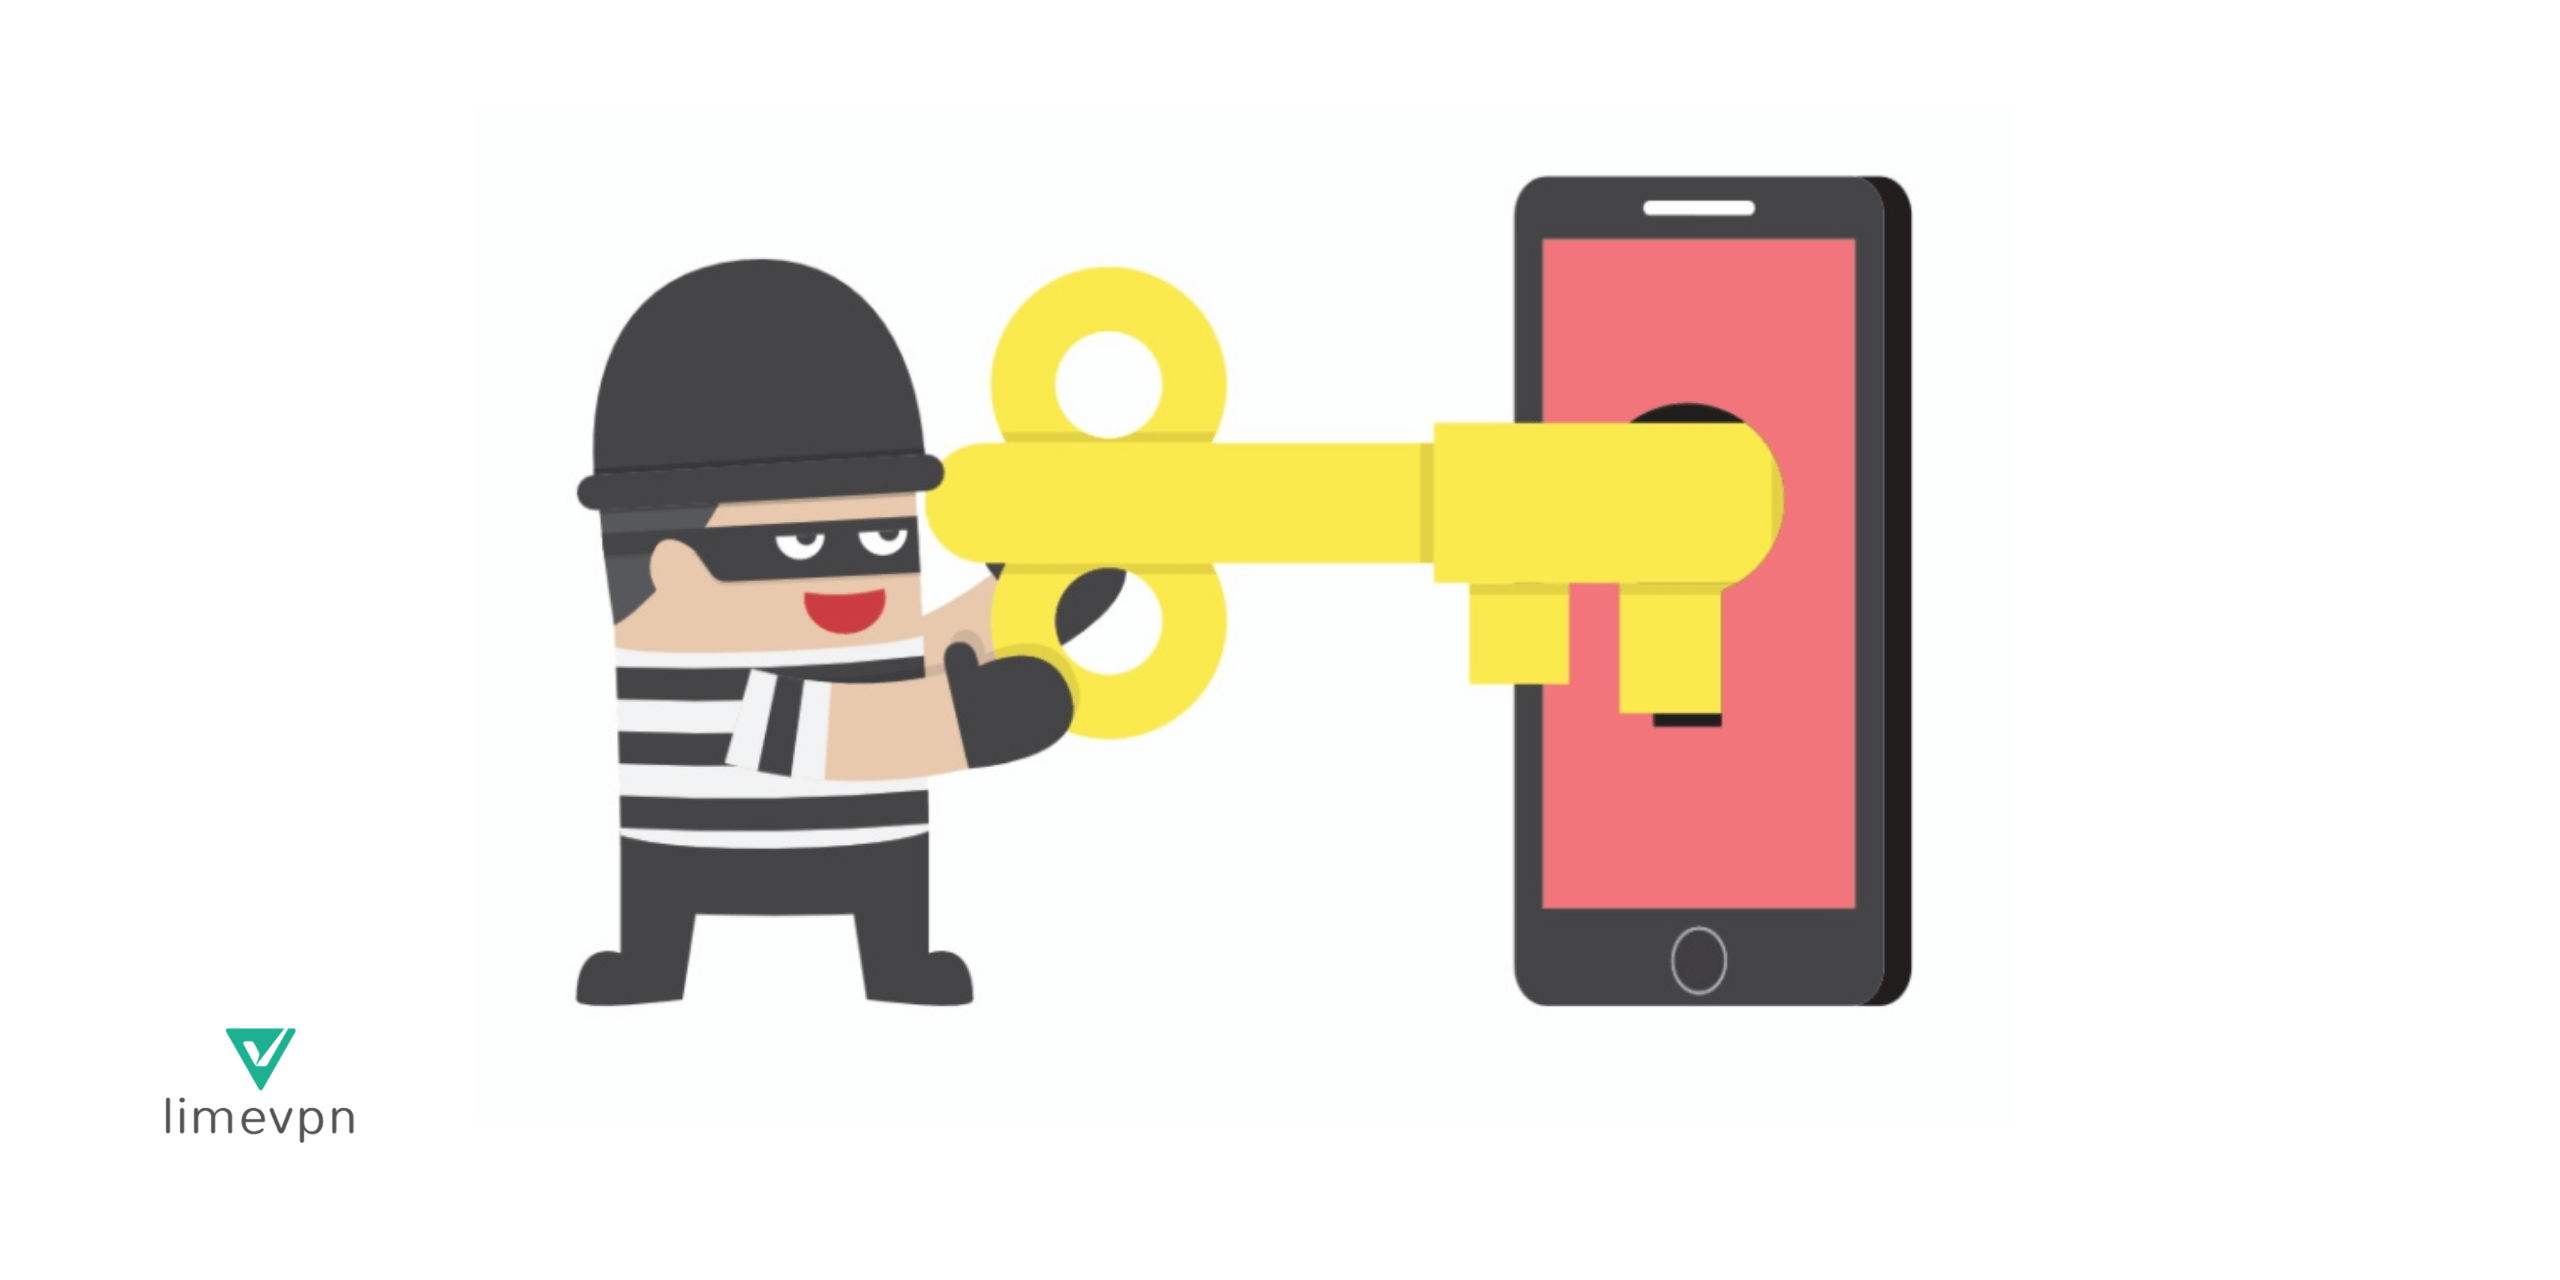 Hackers are Controlling Your Phone or Tablet